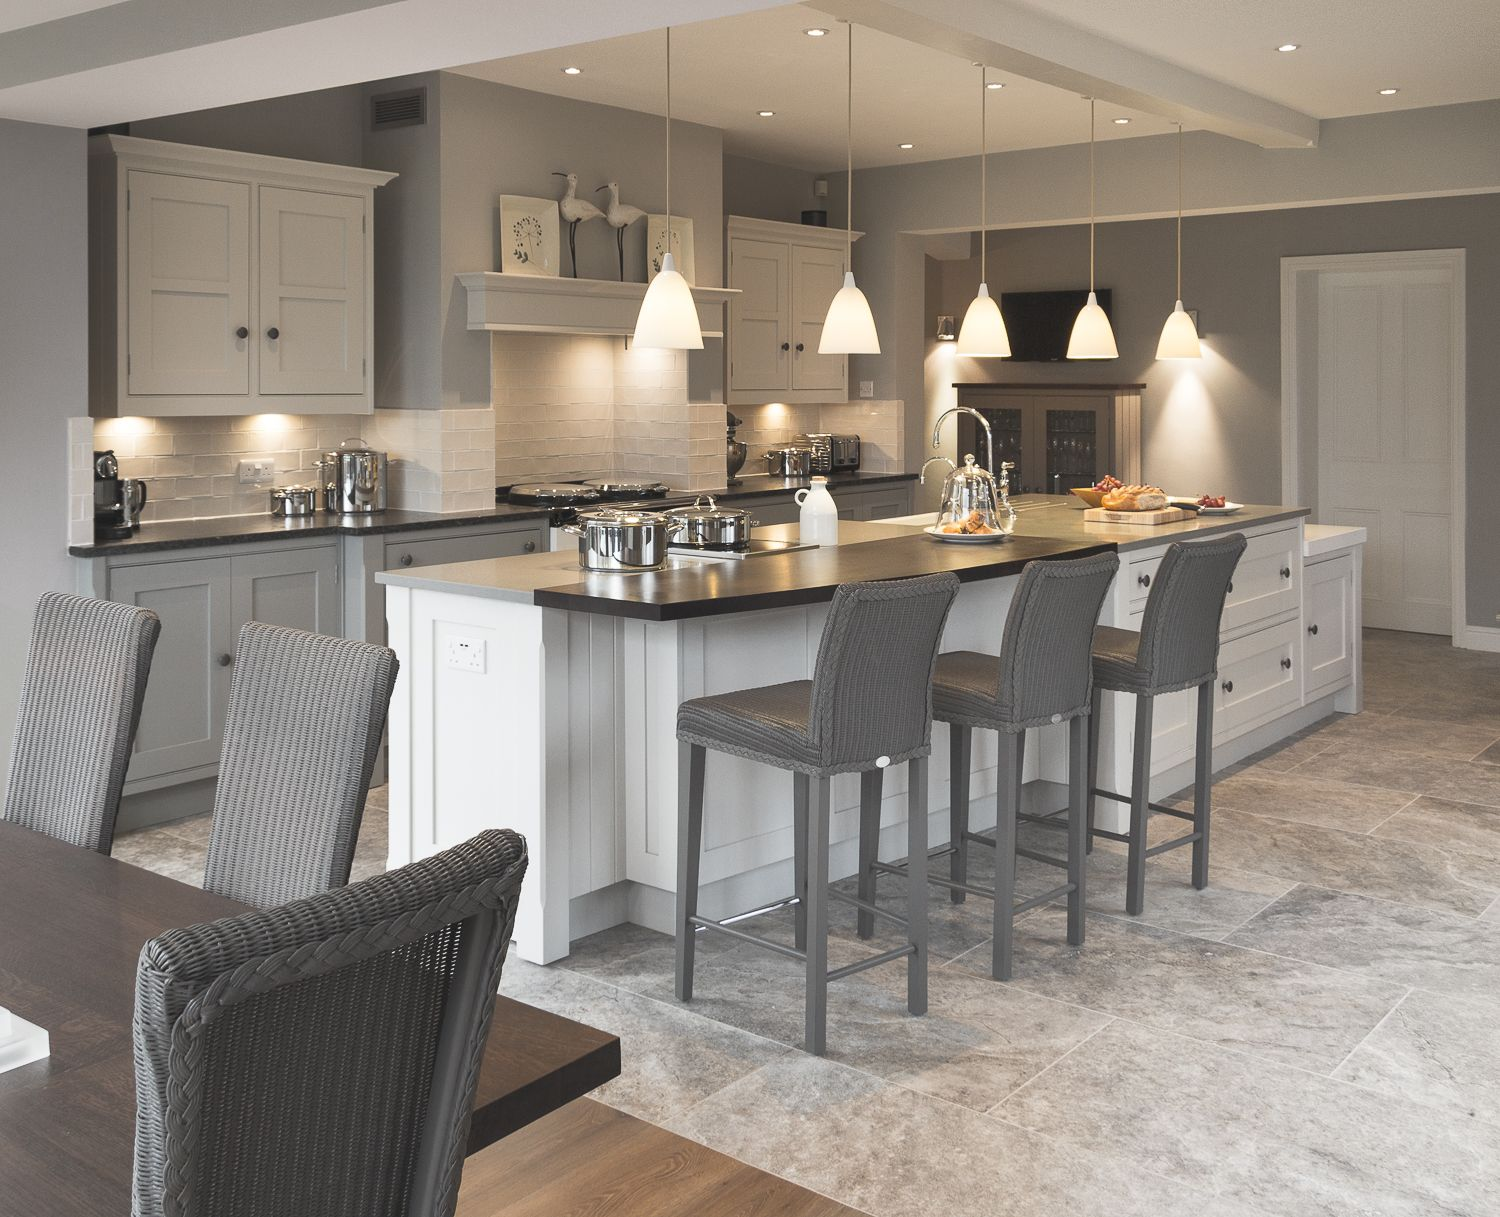 Kitchen Design Ideas Pinterest: A Bespoke Shaker Kitchen Designed By Cheshire Furniture